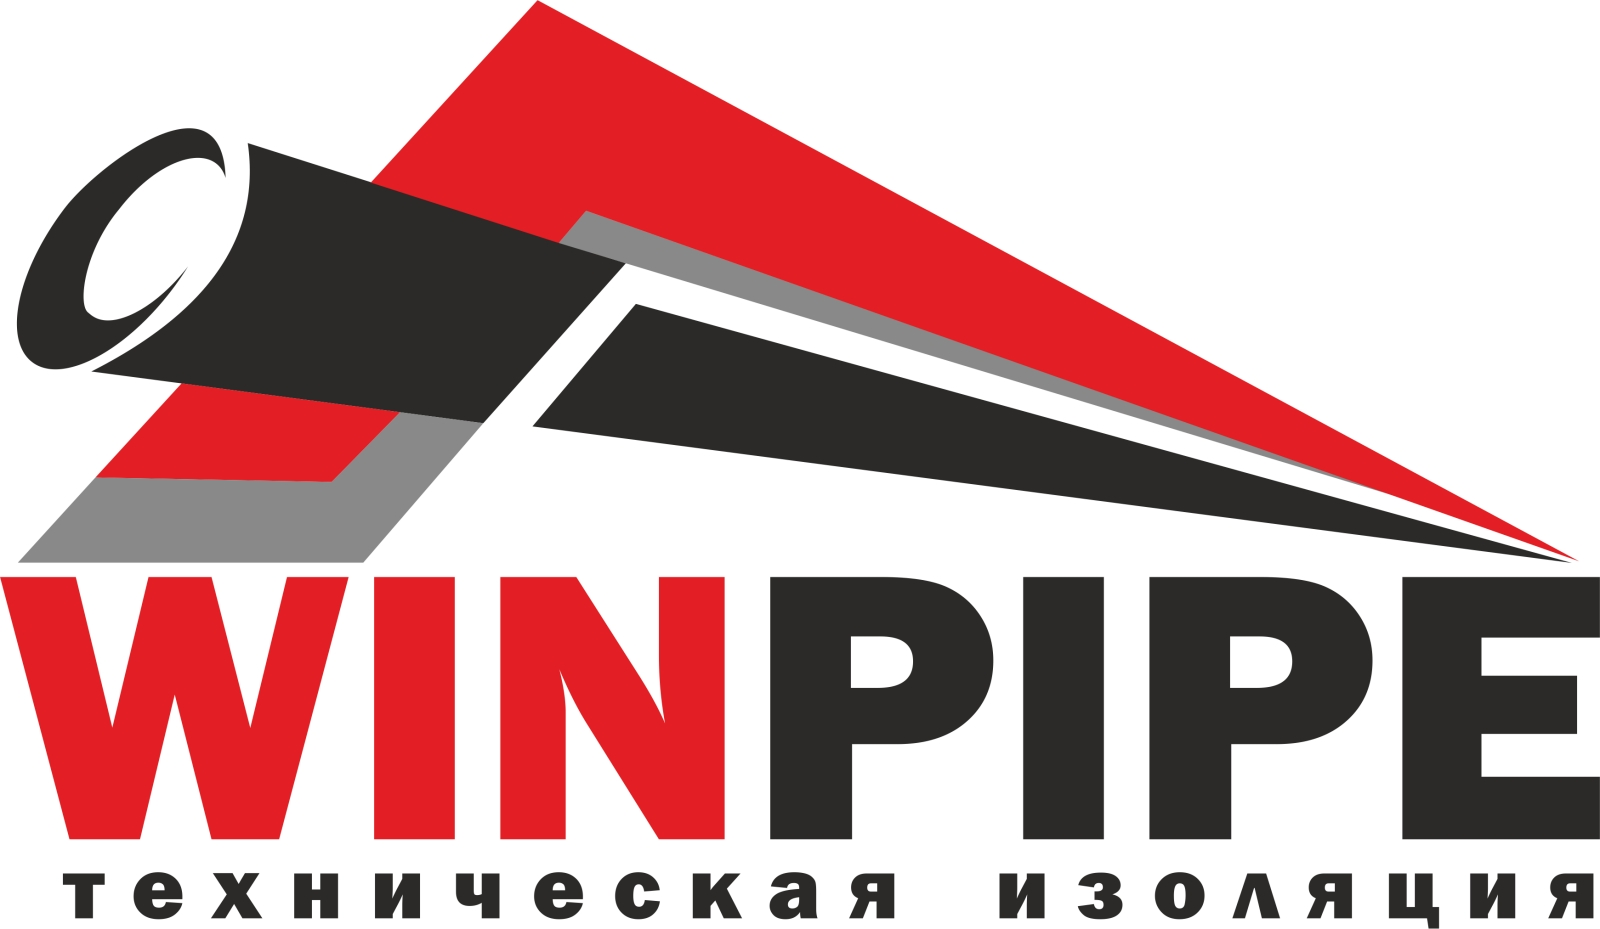 winpipe.by